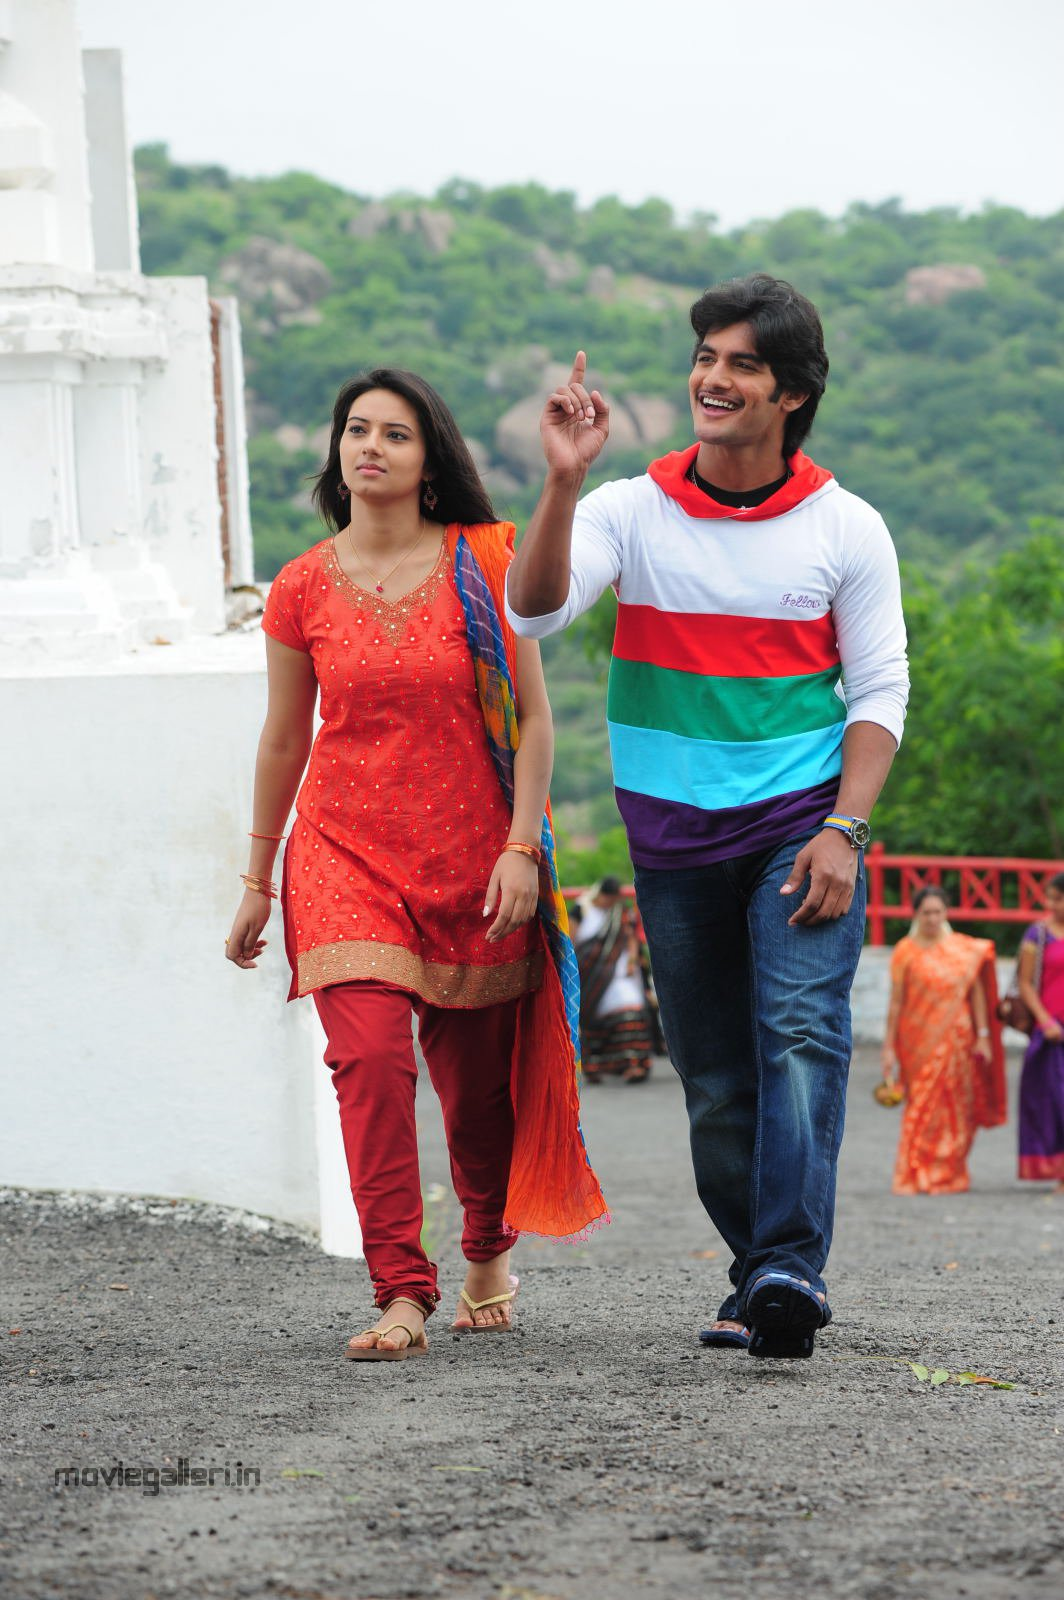 http://1.bp.blogspot.com/_6Vr9b9OoZno/TN-aPFAjuUI/AAAAAAAADyI/IEv2-dbPzqo/s1600/prema_kavali_movie_stills_photos_04.JPG